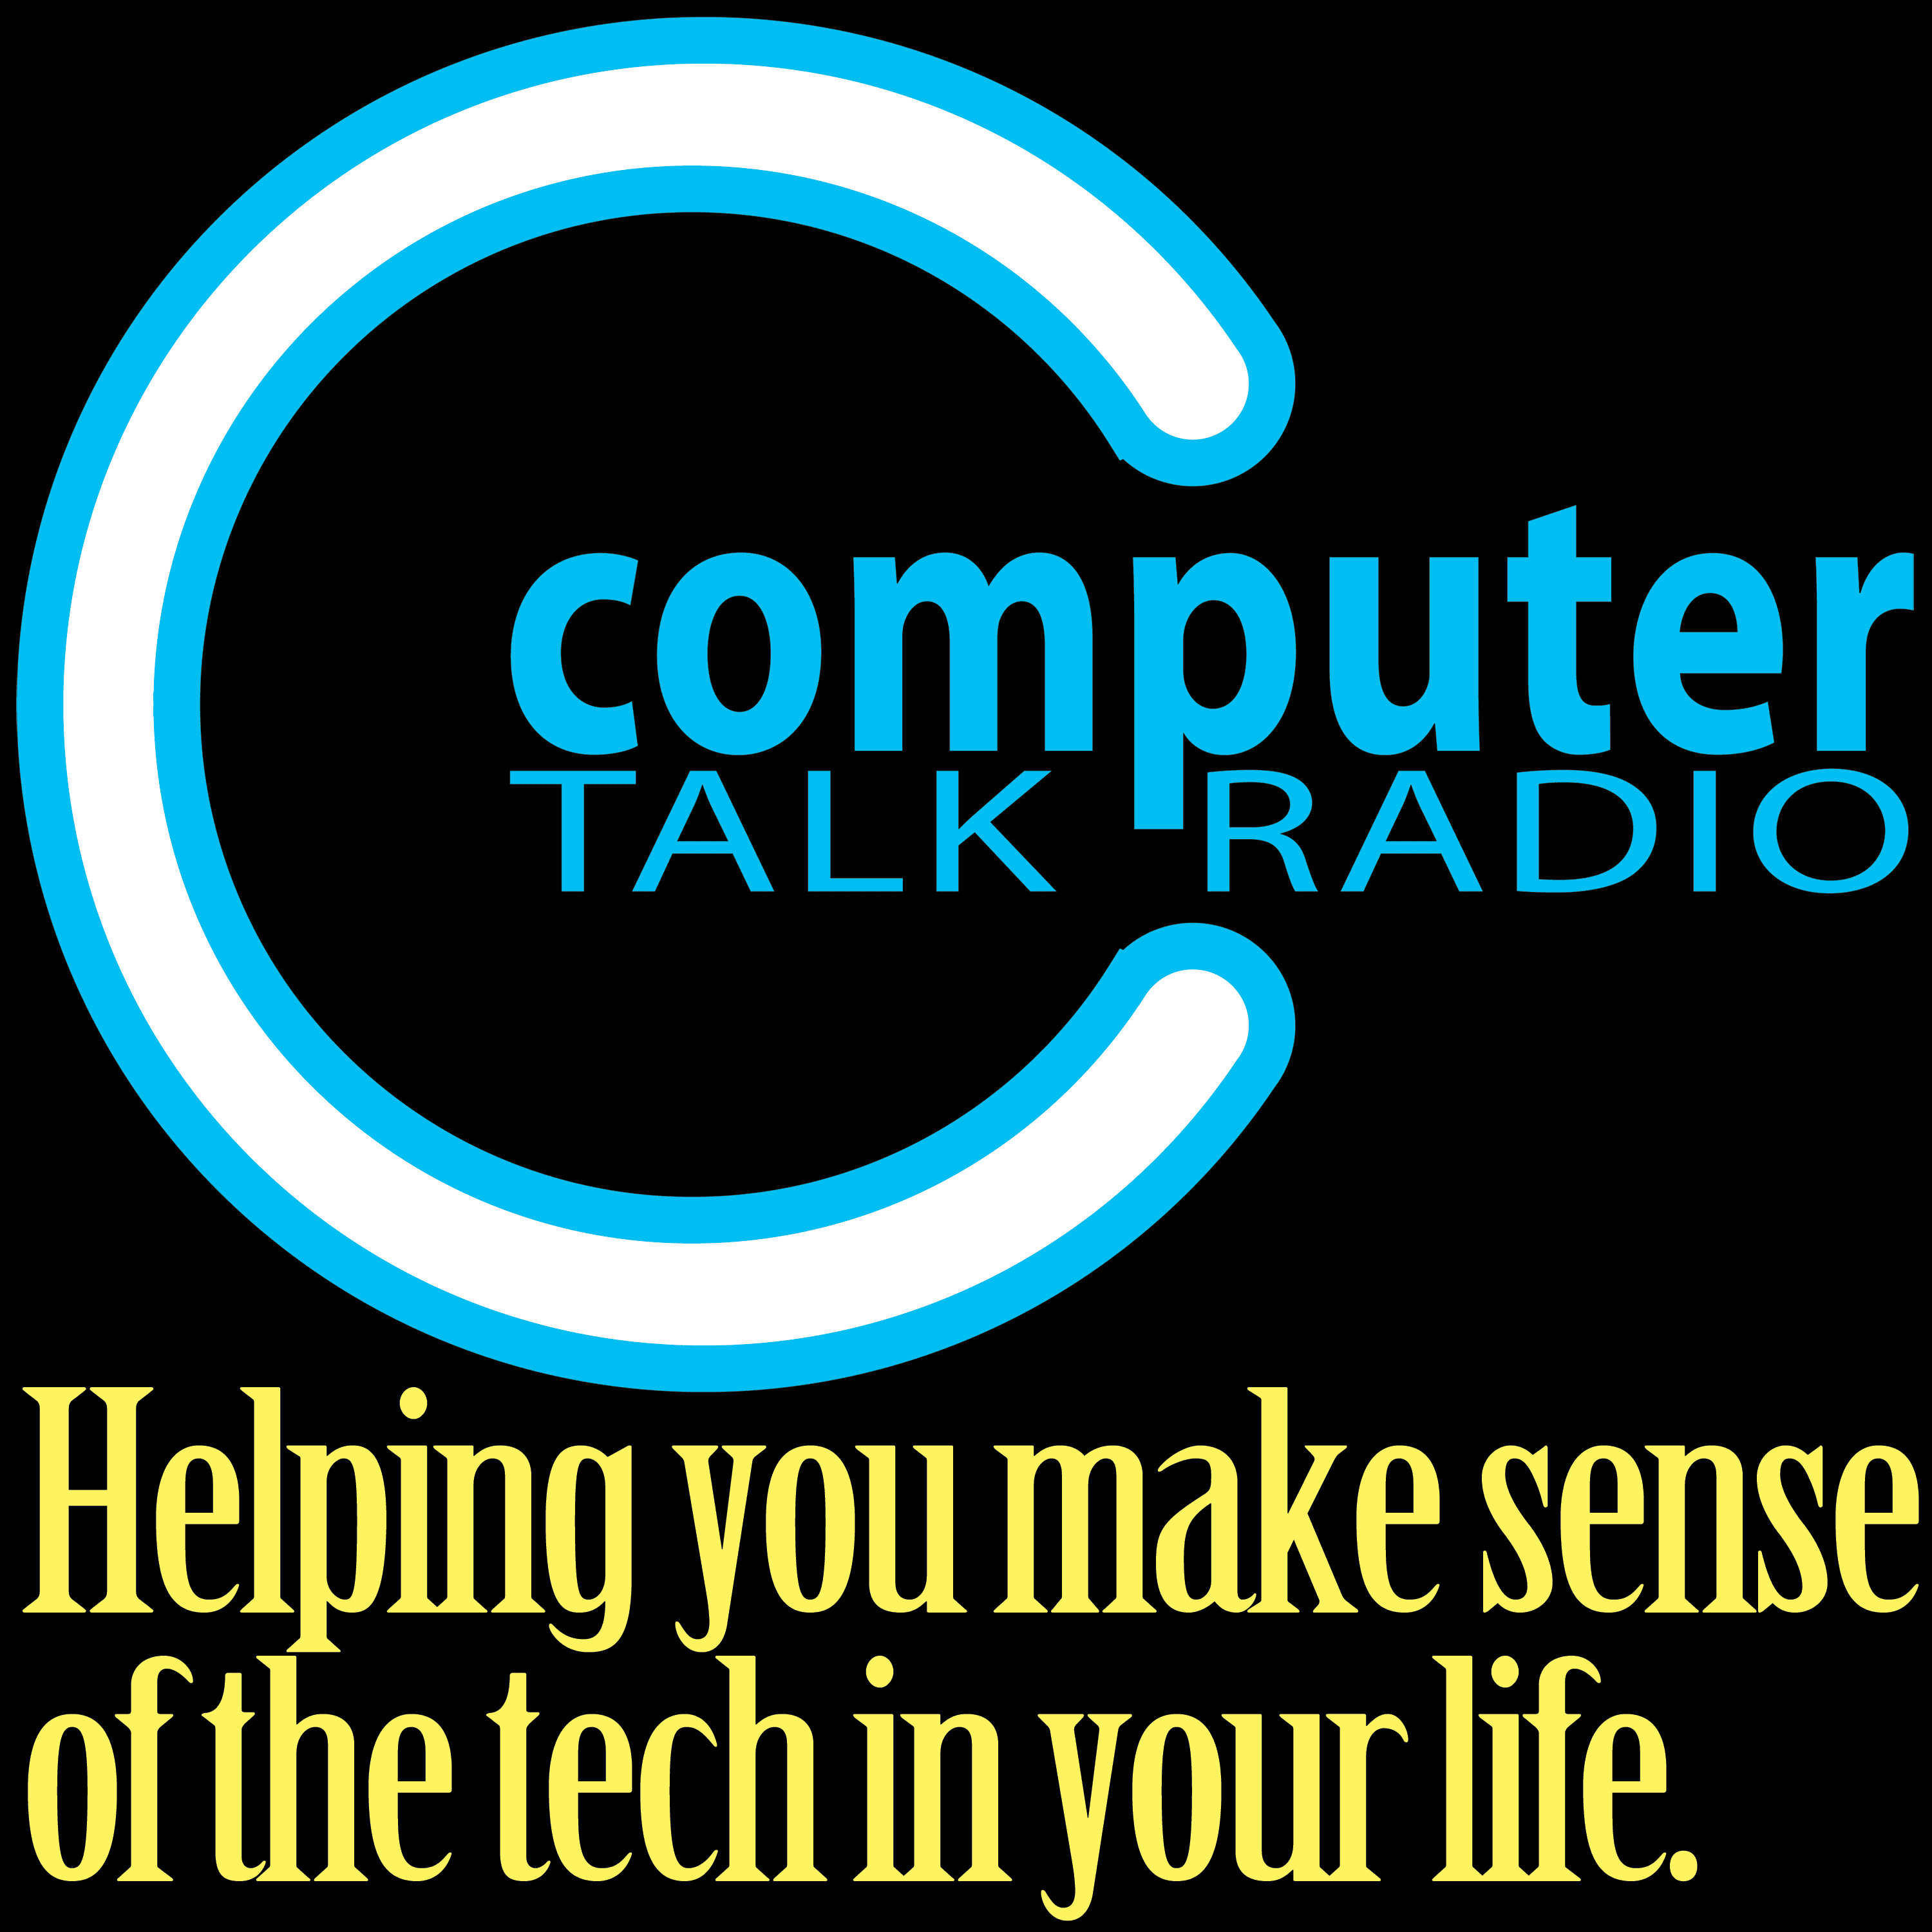 A highlight from Computer Talk Radio Broadcast 08-28-2021